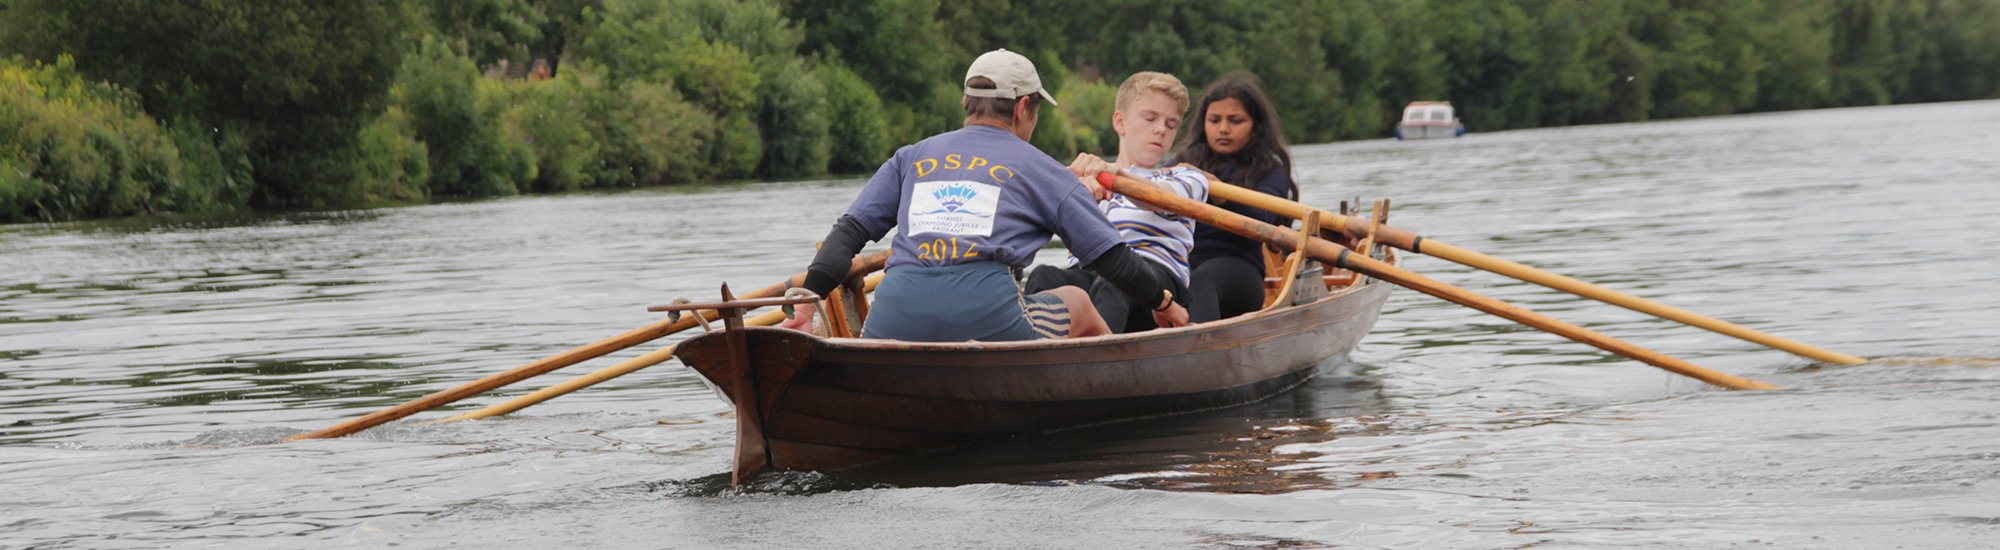 Skiff juniors at Dittons Skiff and Punting Club overlooking Hampton Court Palace